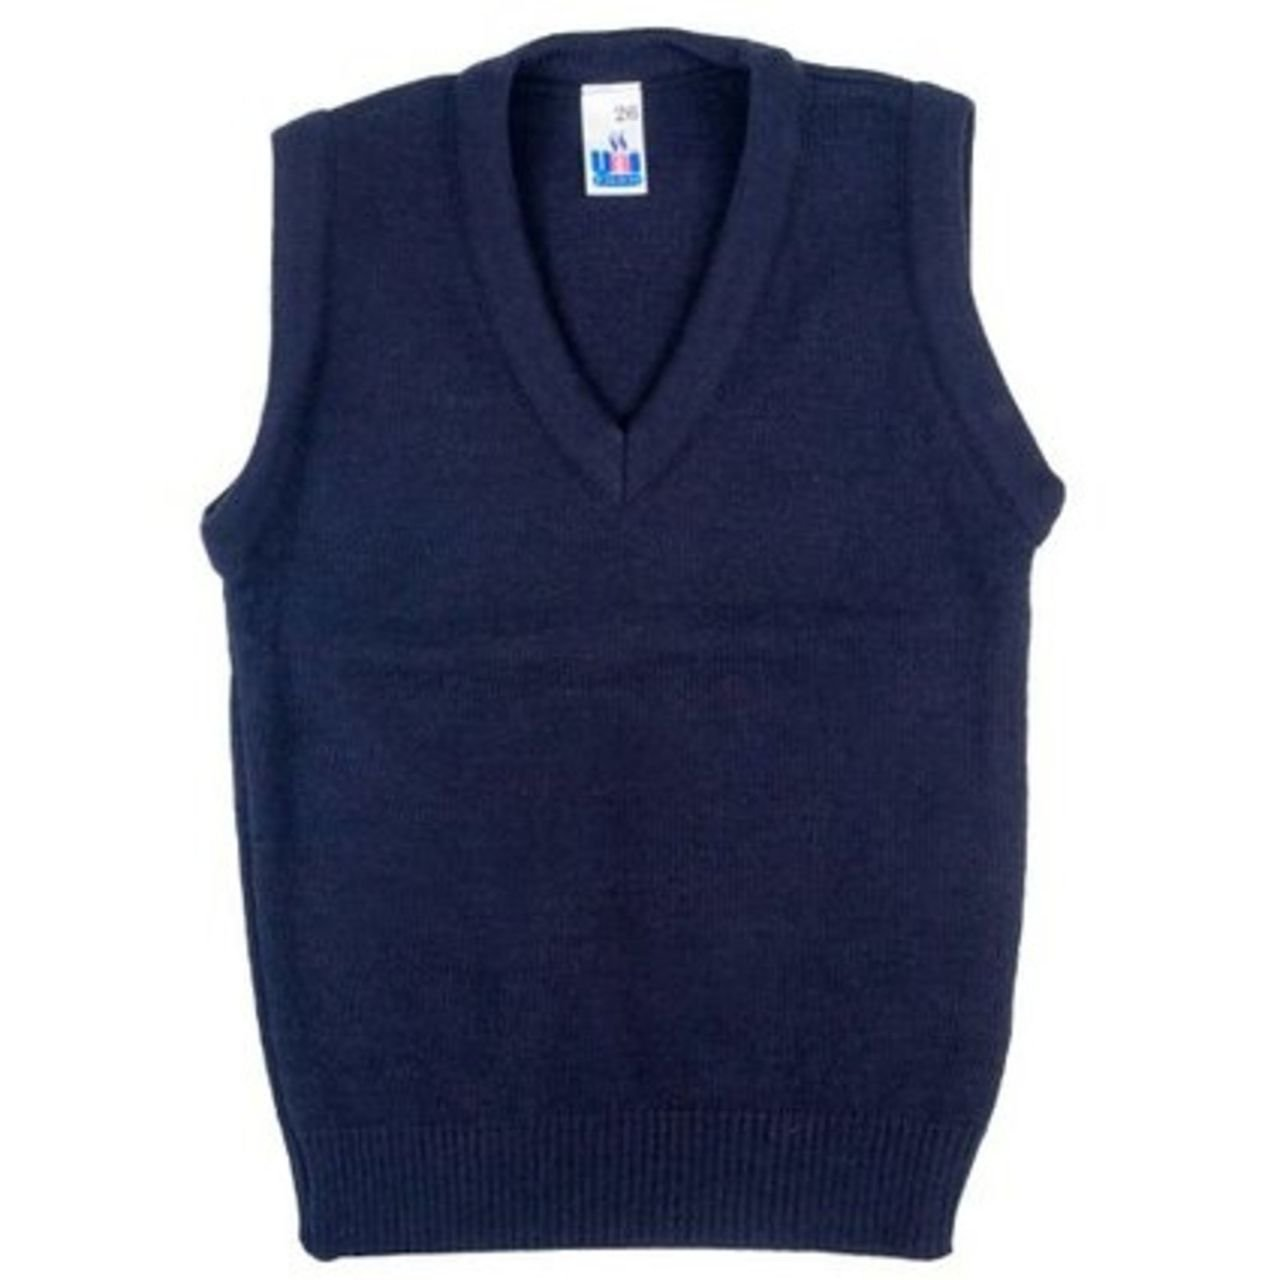 Vintage Style Children's Clothing: Girls, Boys, Baby, Toddler School Uniform V Neck Tank Top Sleeveless Jumper £12.19 AT vintagedancer.com